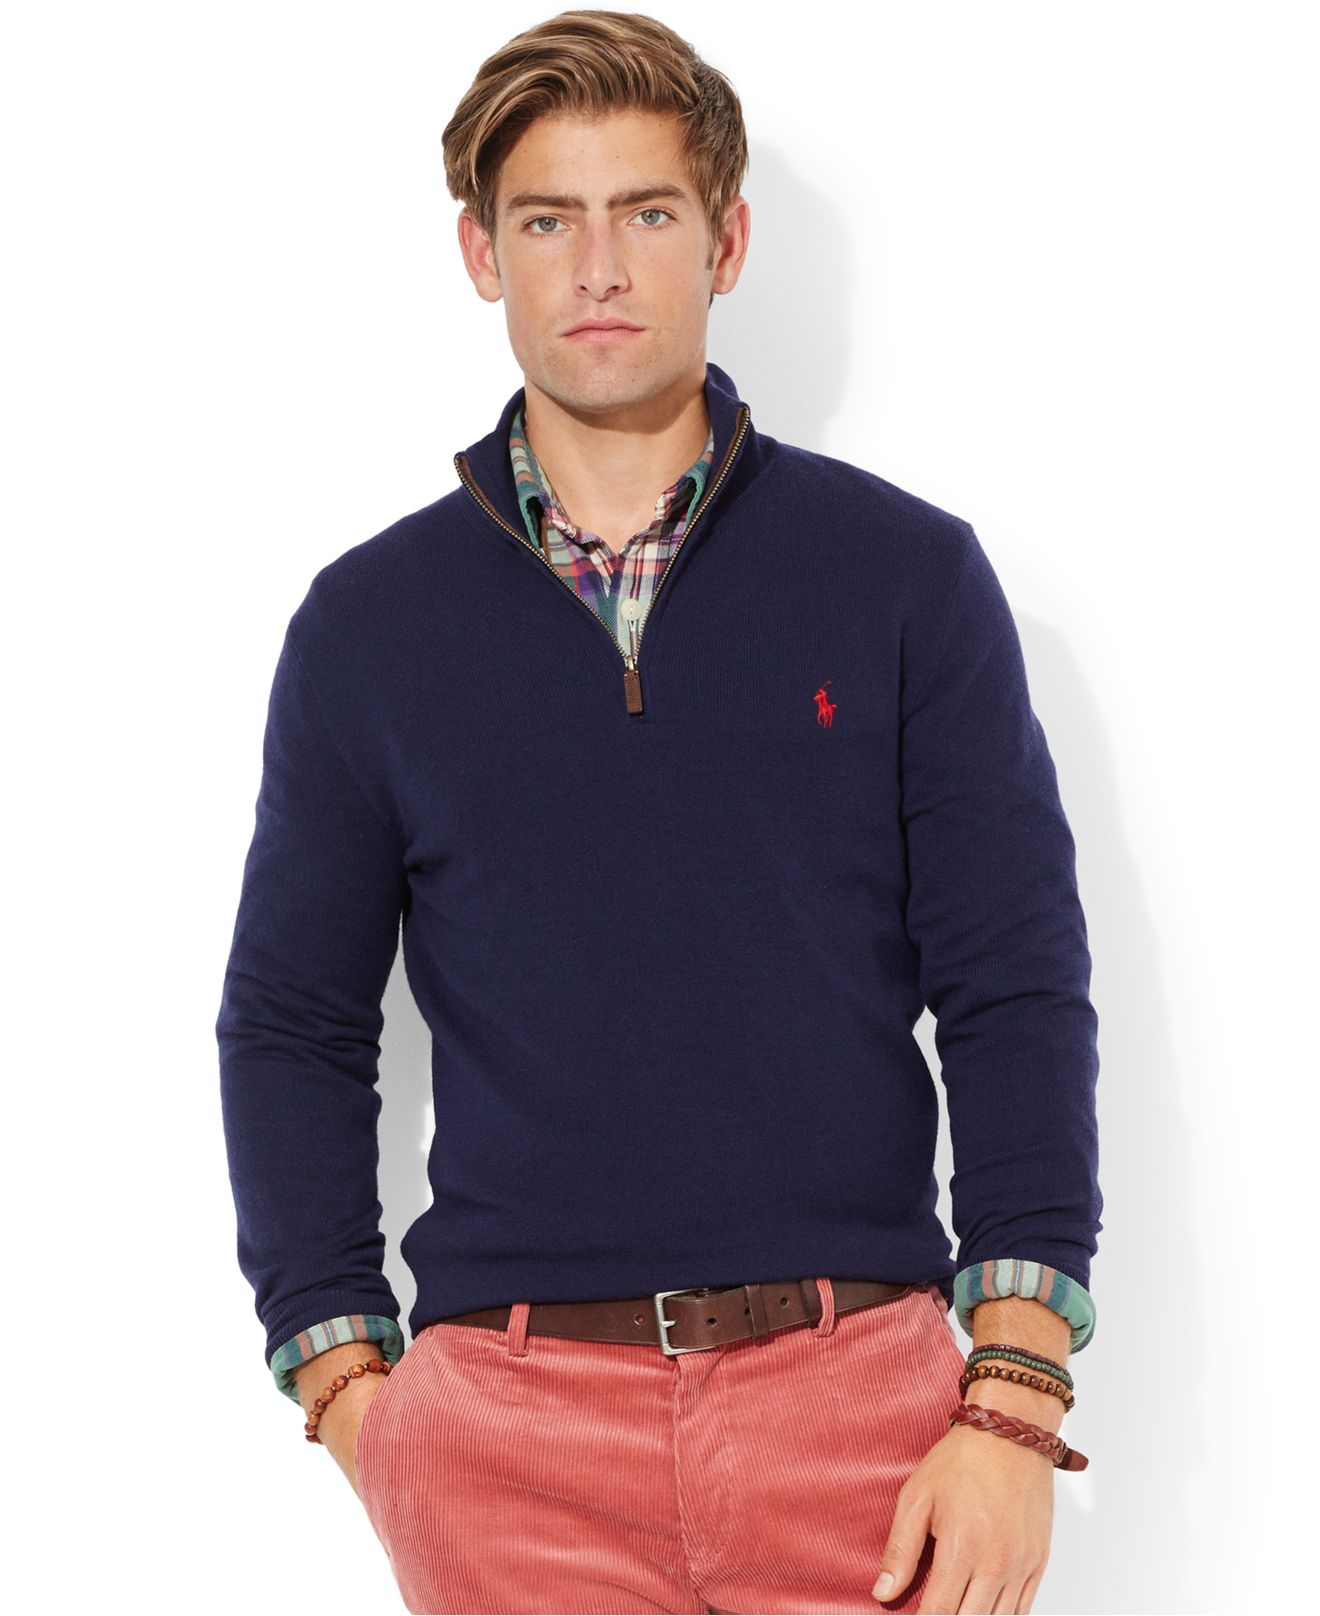 polo,ralph,lauren,blue,merino,wool,half,zip,sweater,product,1,24786528,0,534201352,normal.jpeg